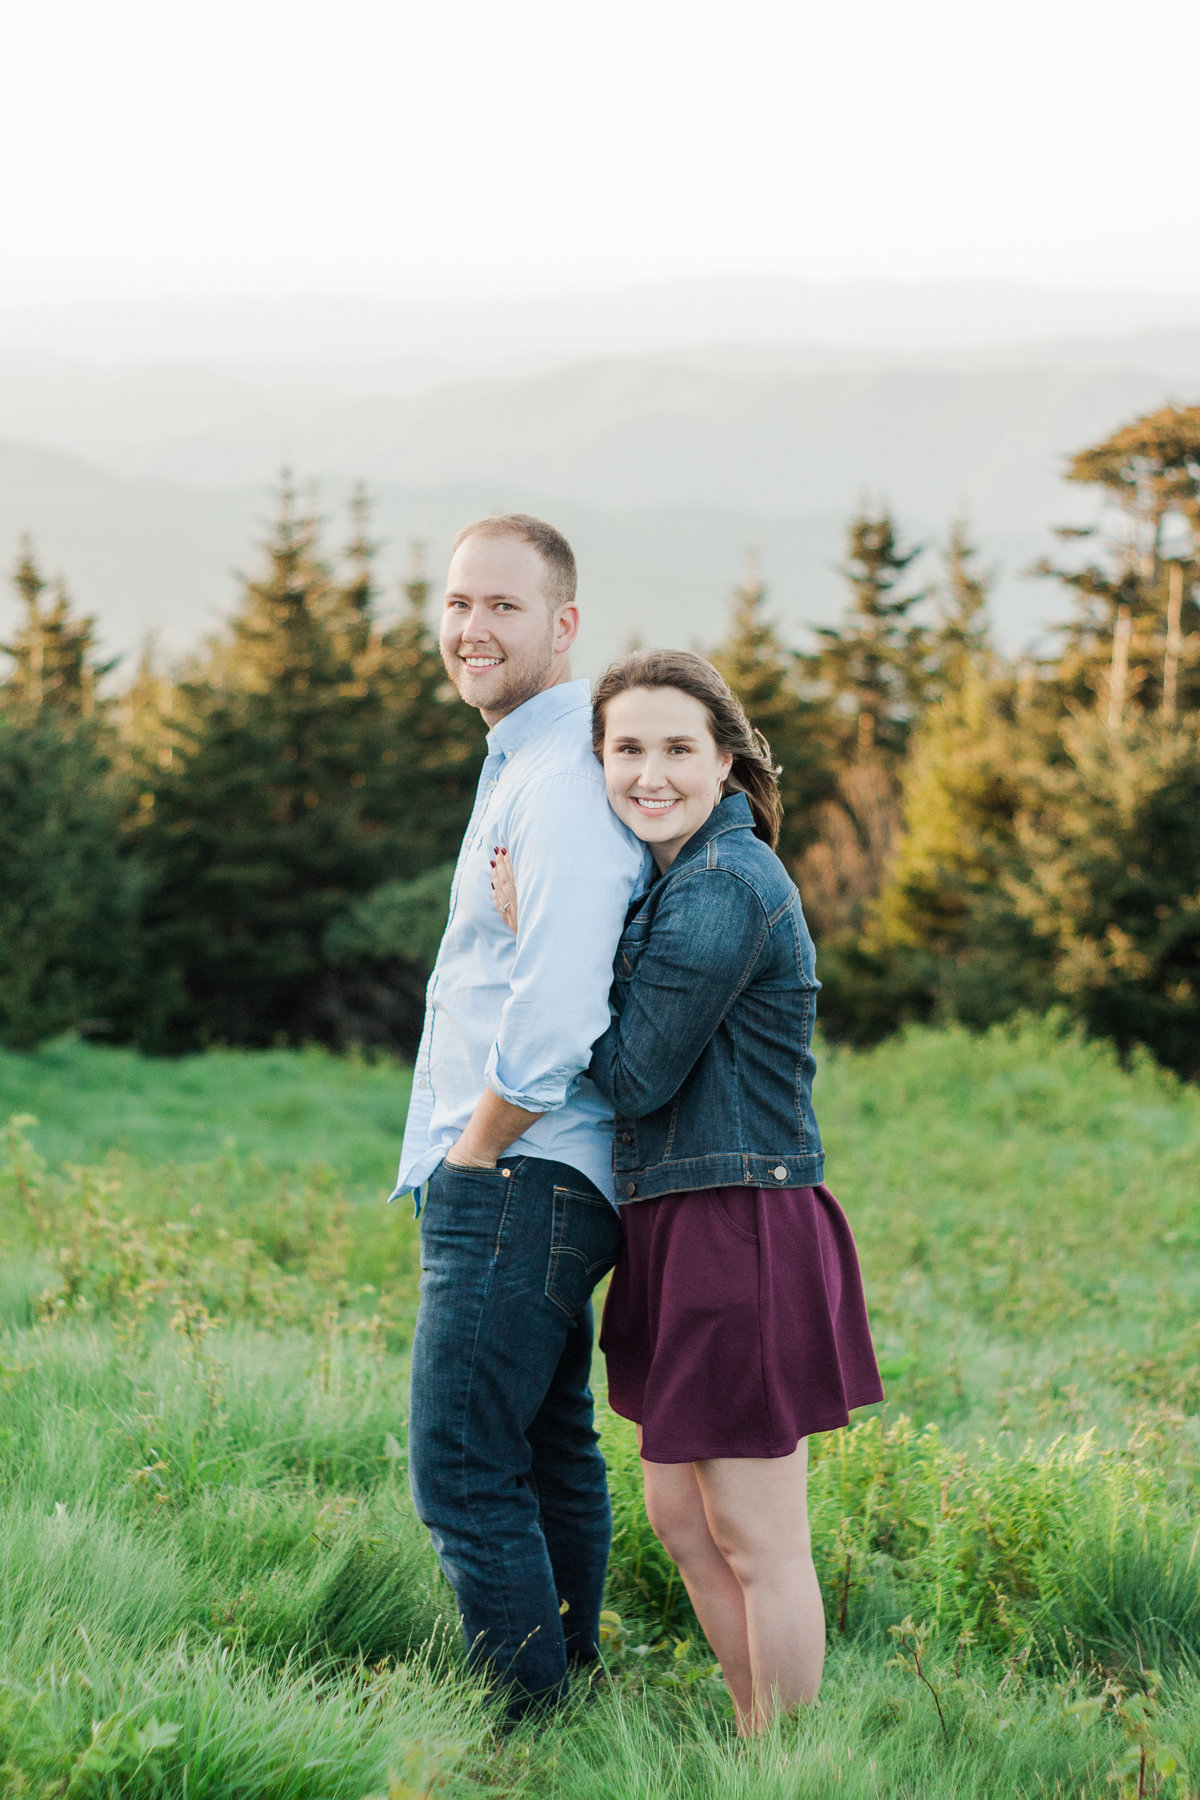 Adventurous engagement photographed at Roan Mountain by Boone Photographer Wayfaring Wanderer.